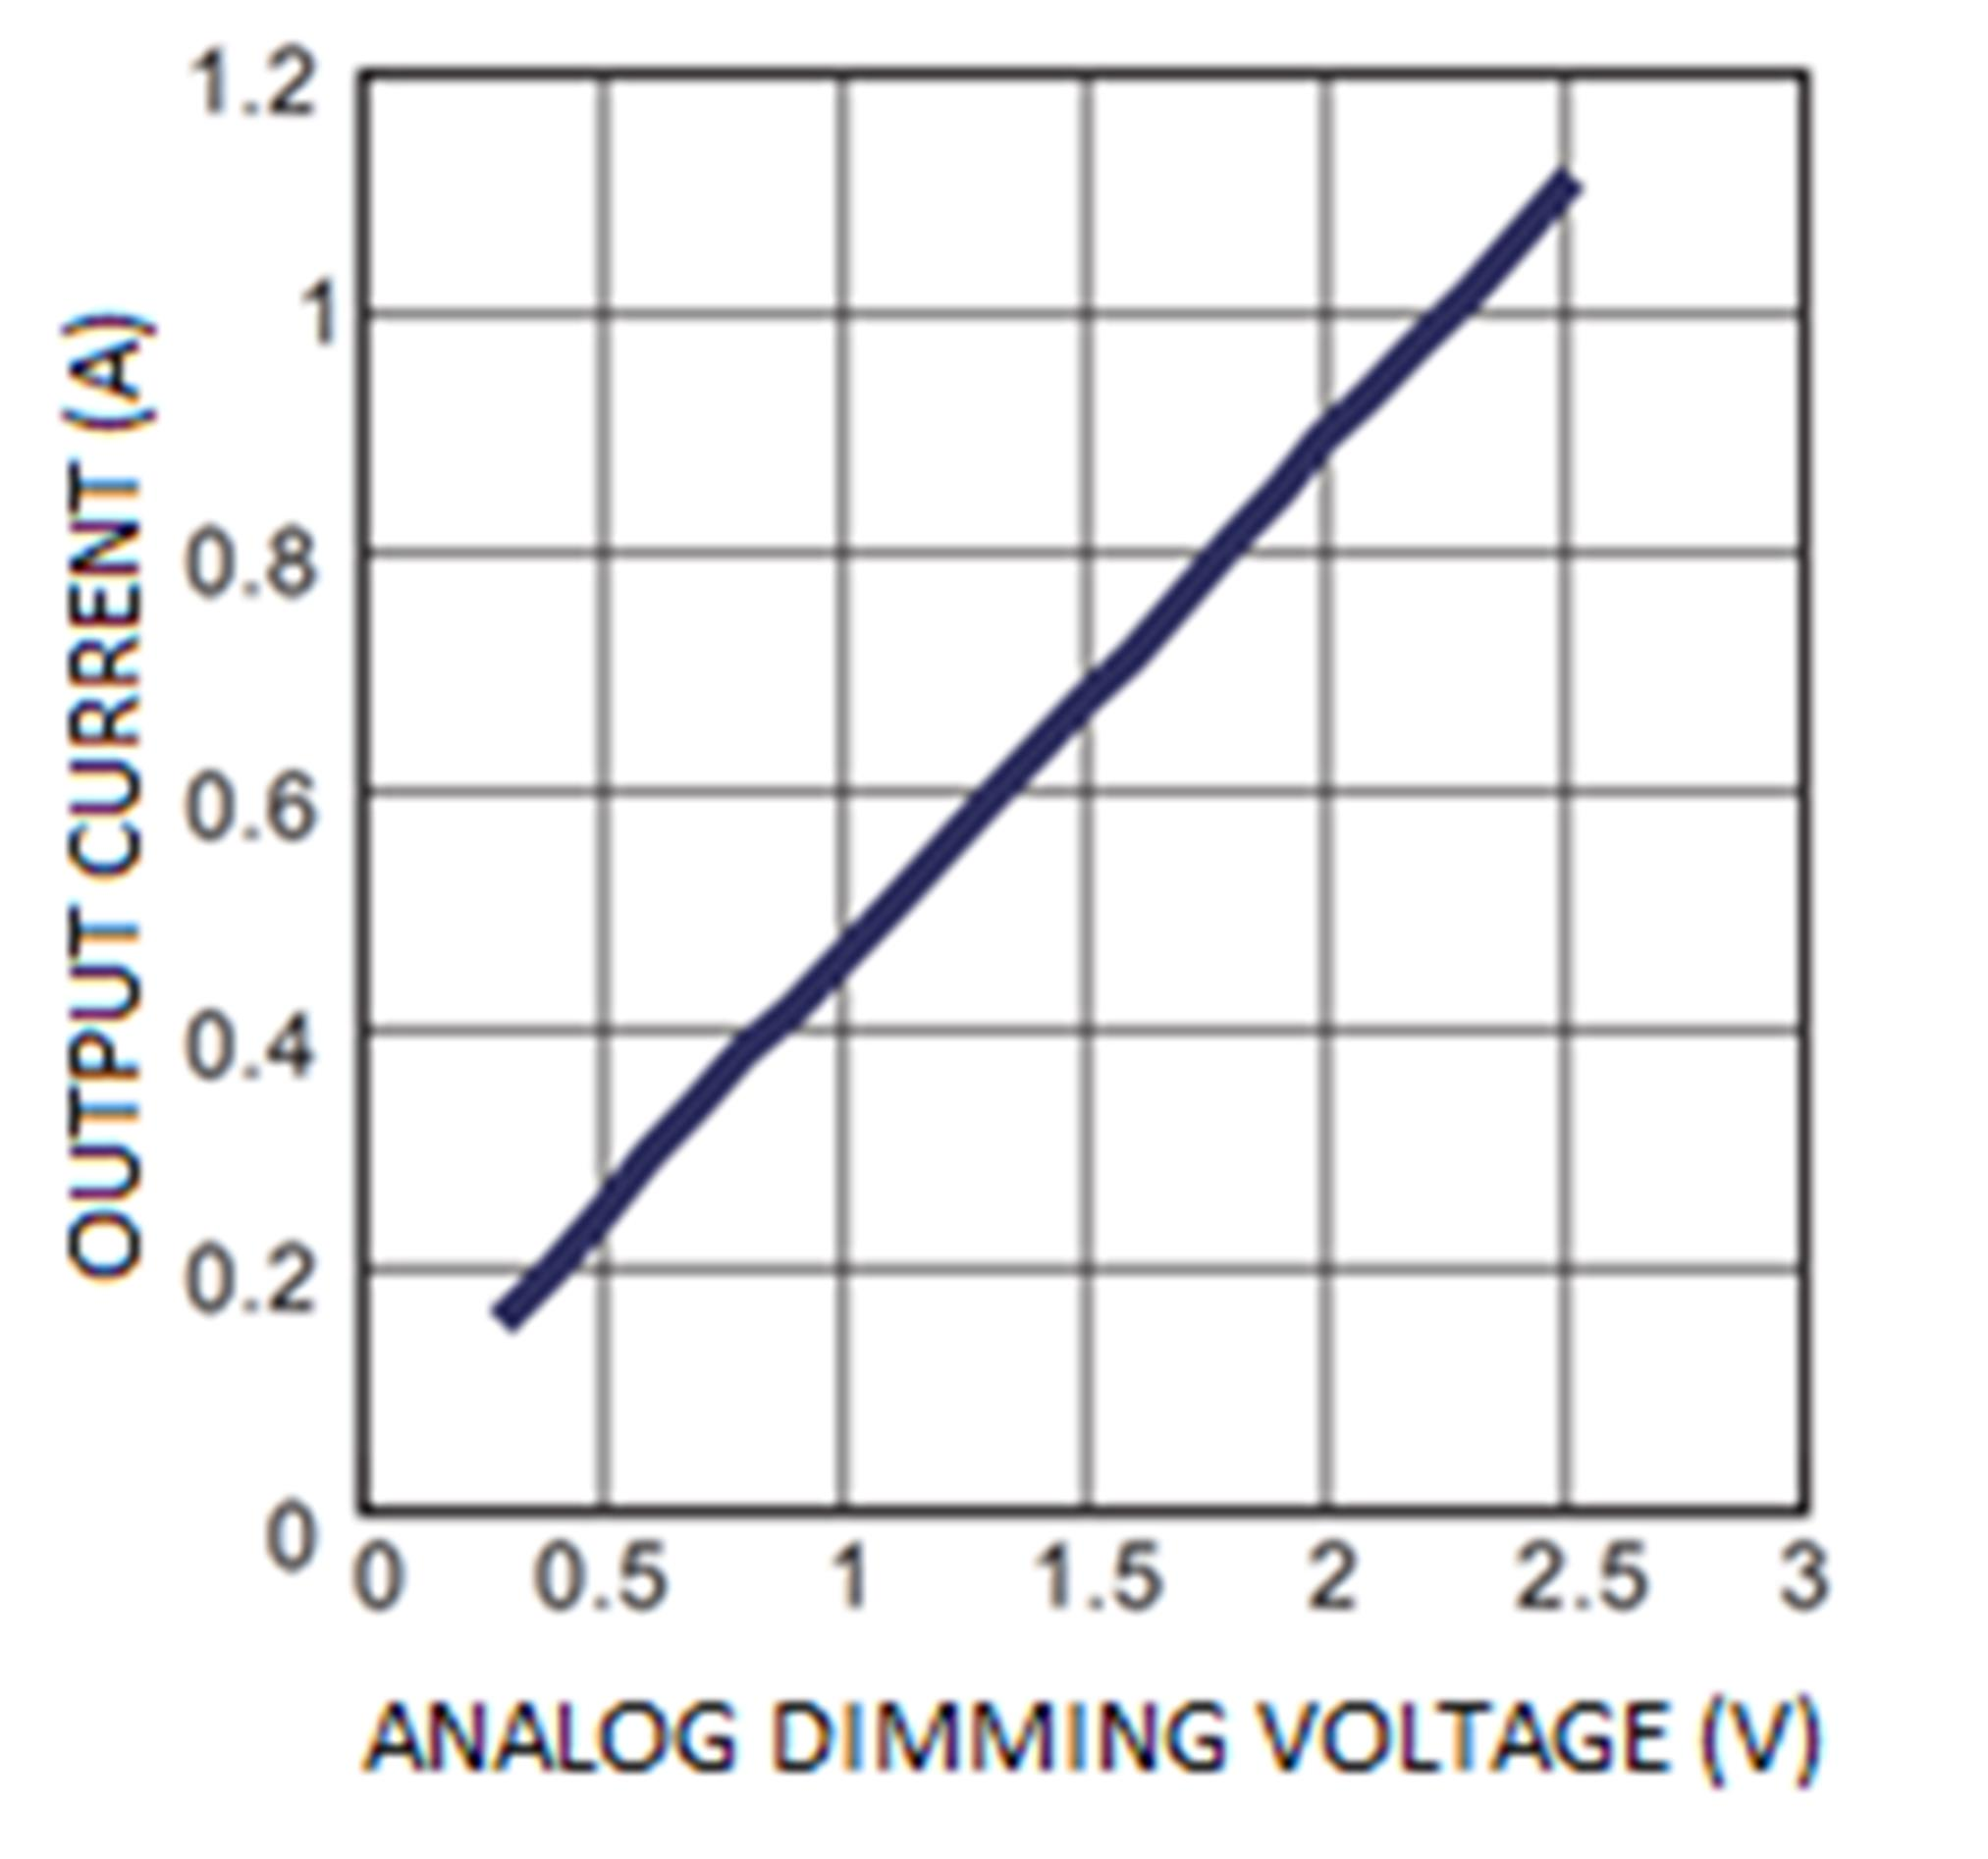 graph of the analog dimming curve